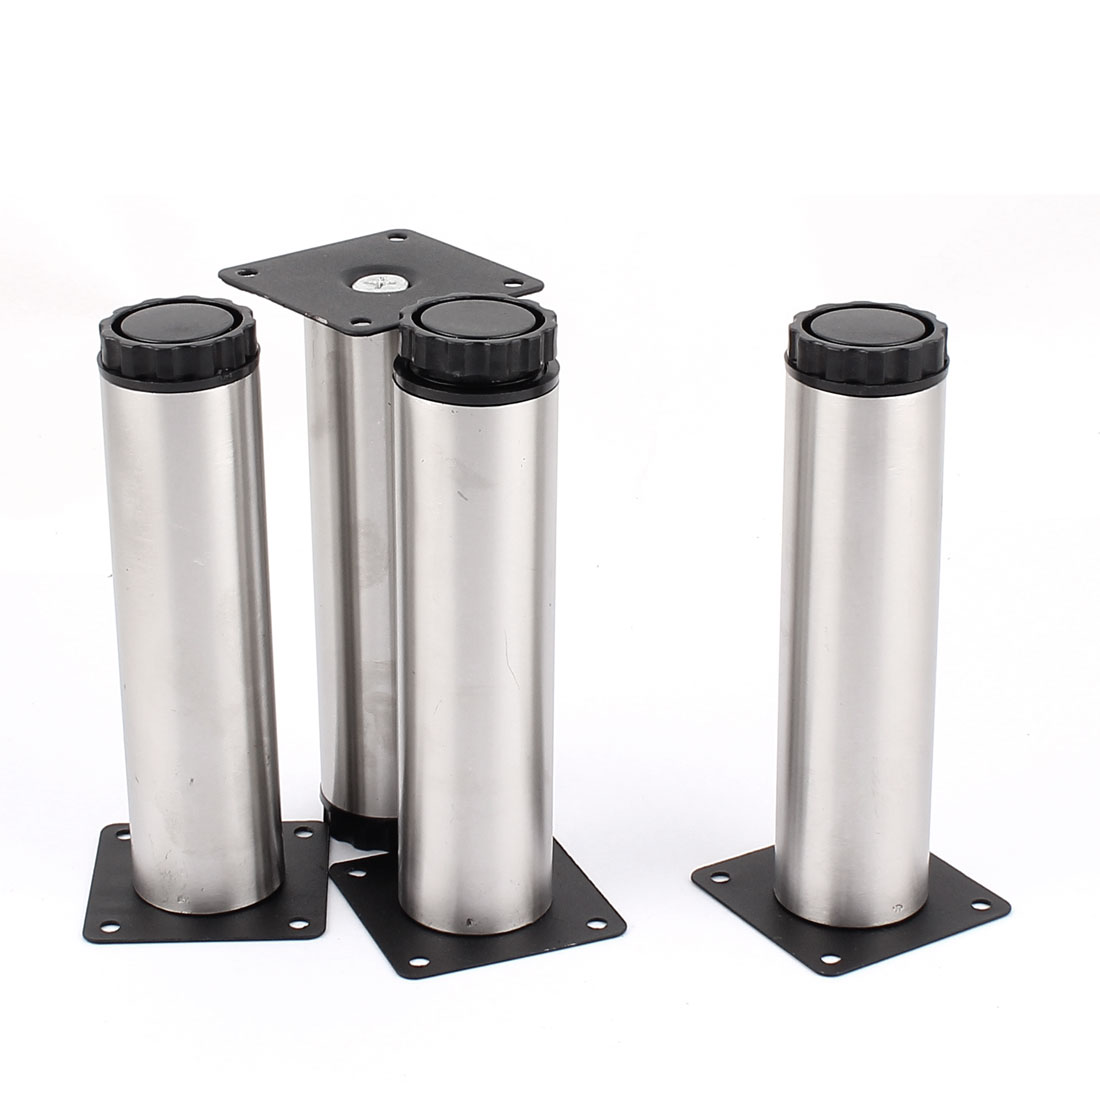 Sofa Chair Tea Table Bed 38mm x 150mm Adjustable Cabinet Leg Silver Tone 4pcs